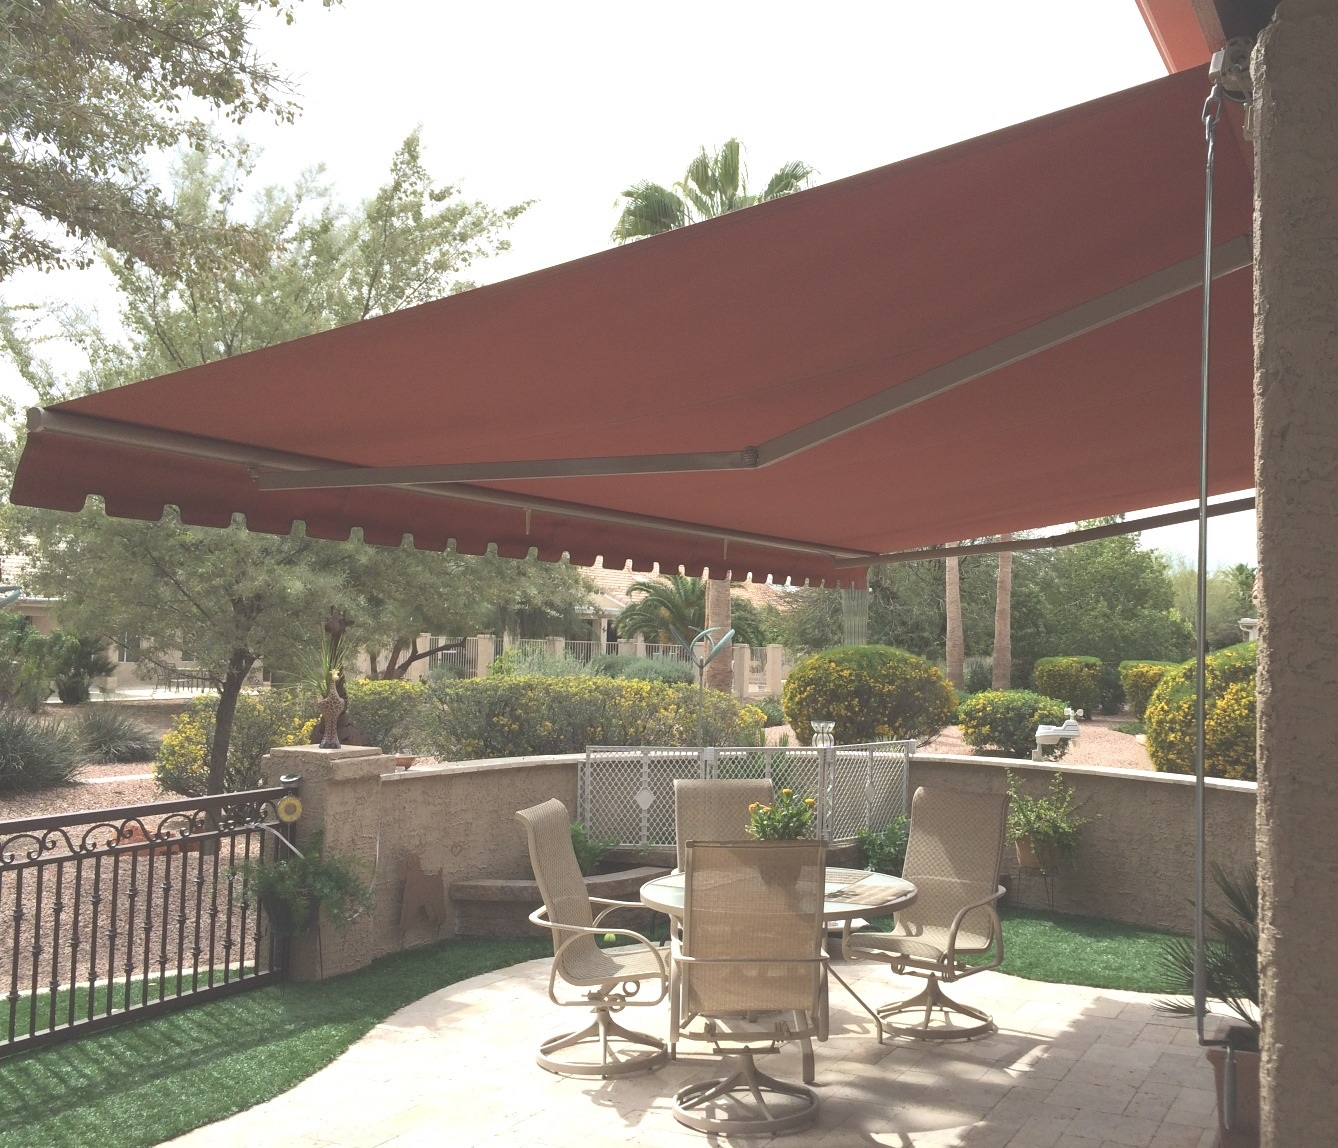 Sunchoice Retractable Patio Awnings Incredible Deals